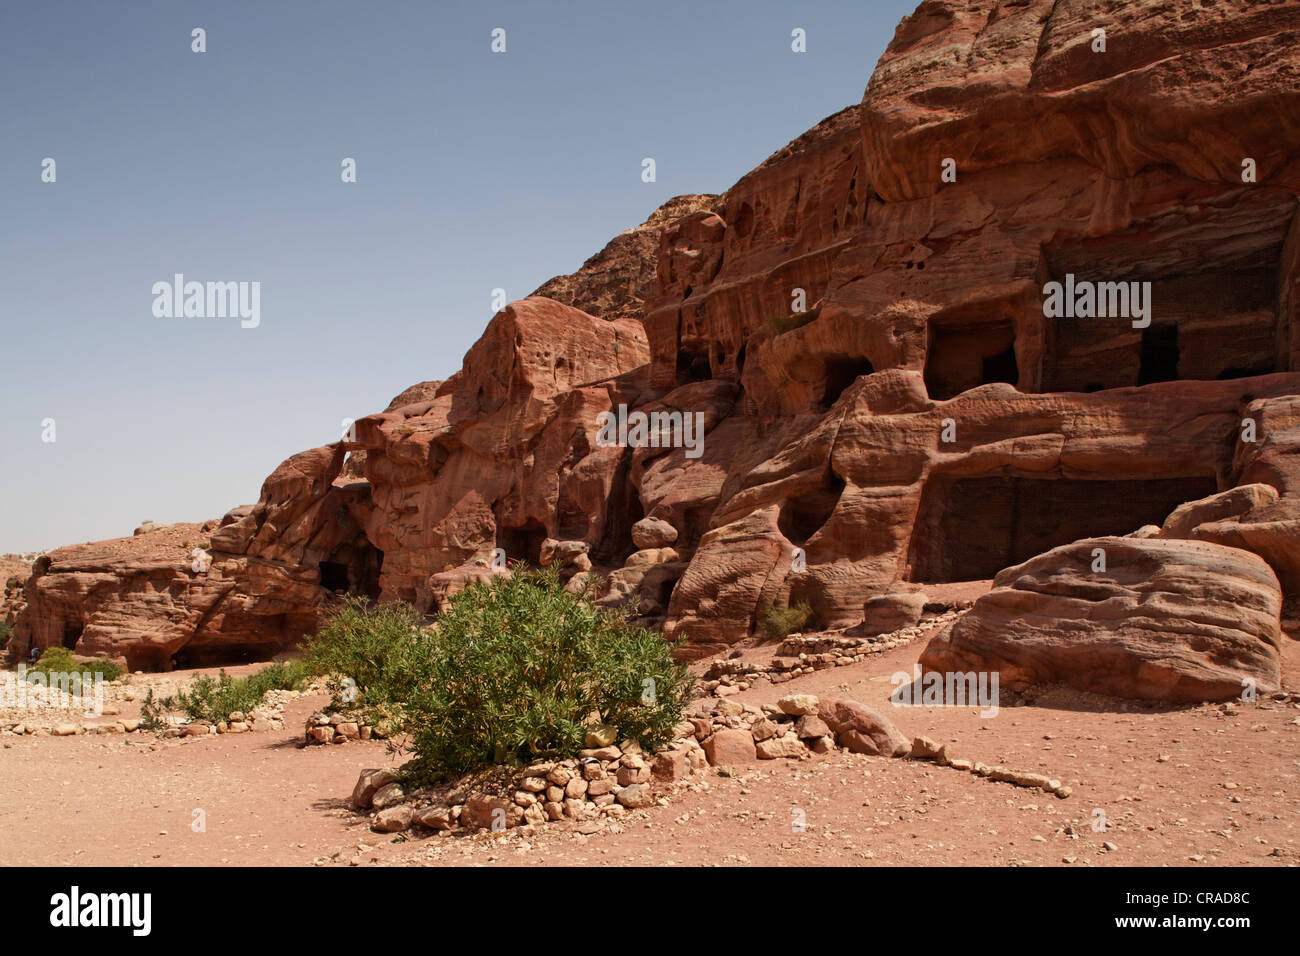 Rock tombs, Petra, the capital city of the Nabataeans, rock city, UNESCO World Hertage Site, Wadi Musa - Stock Image